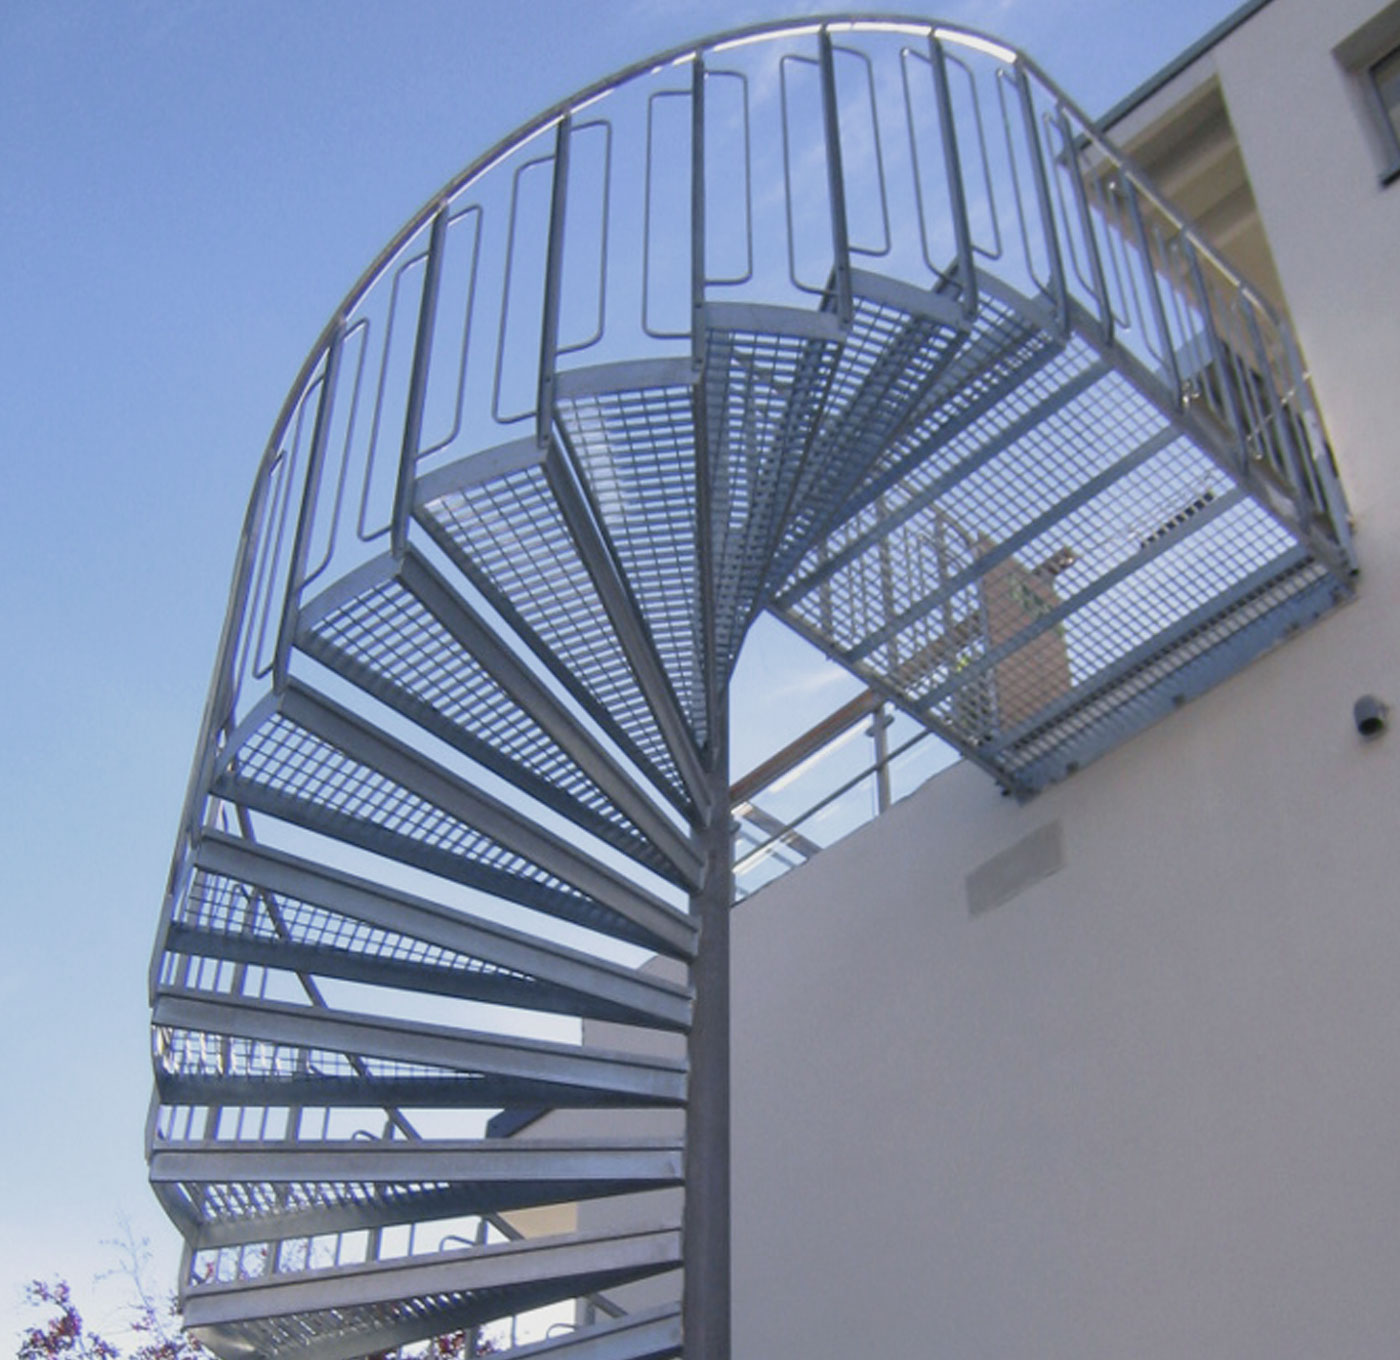 Spiral staircase childsafe railing with arcs